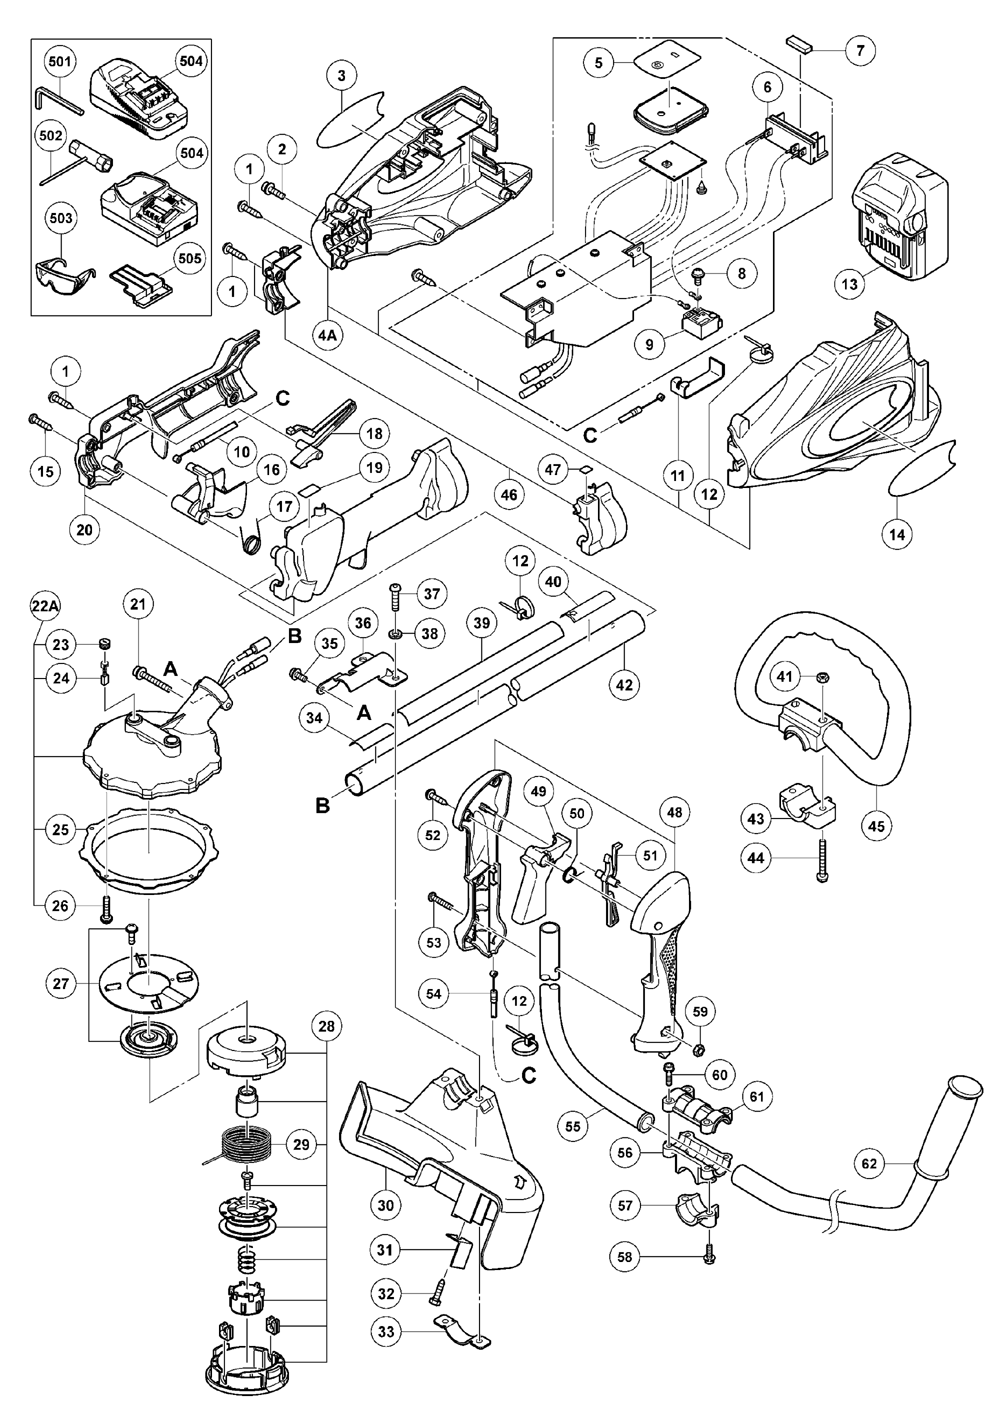 hitachi cg18dsdl parts list